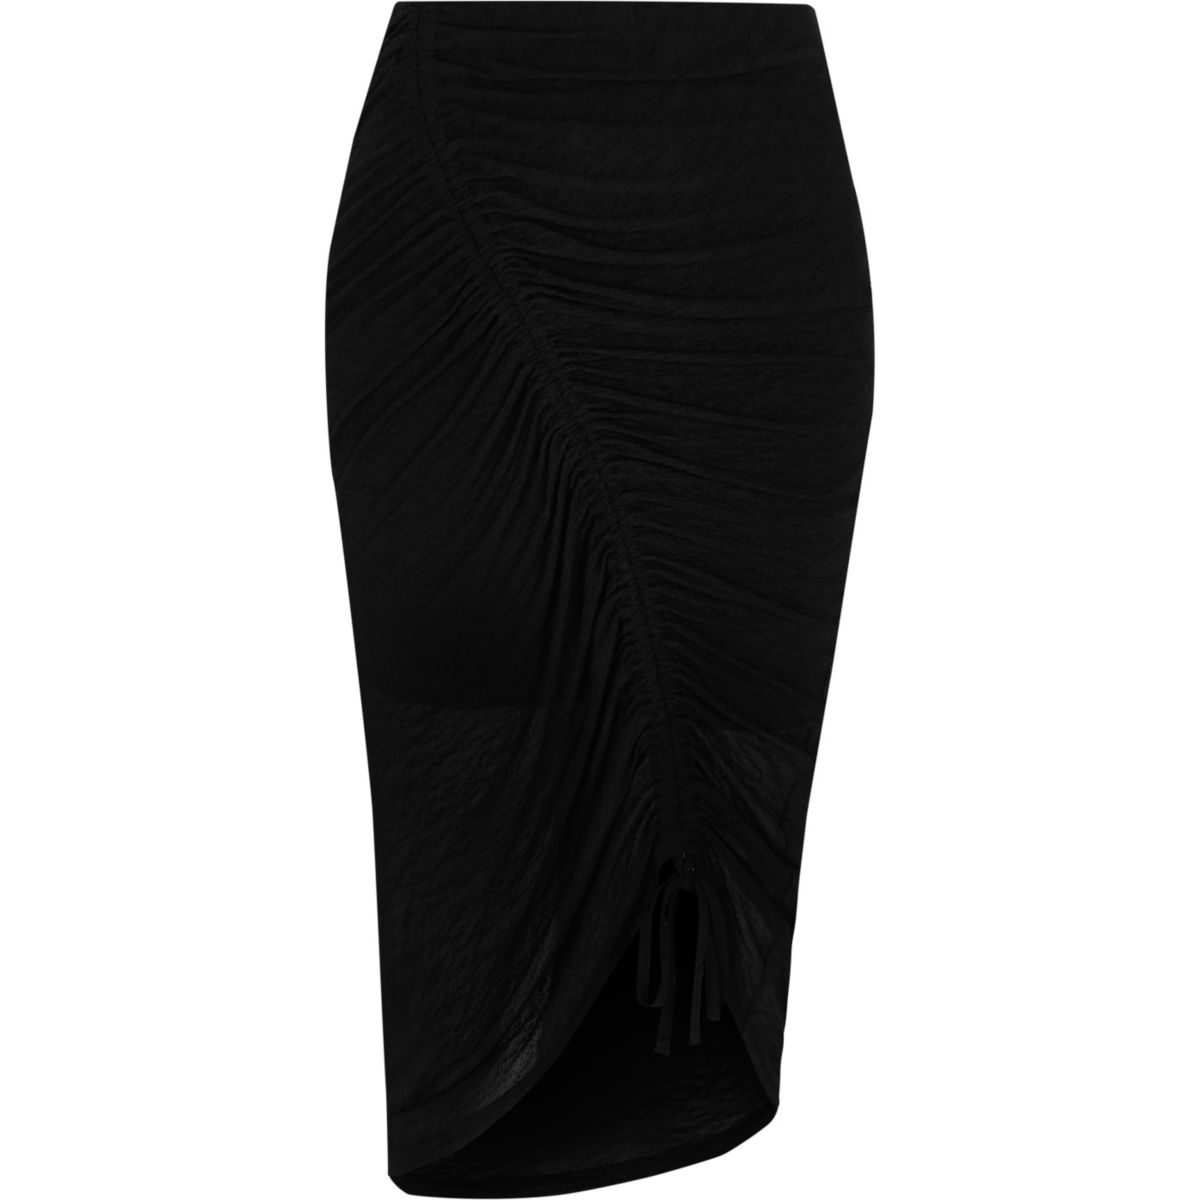 Black diagonal ruched midi pencil skirt